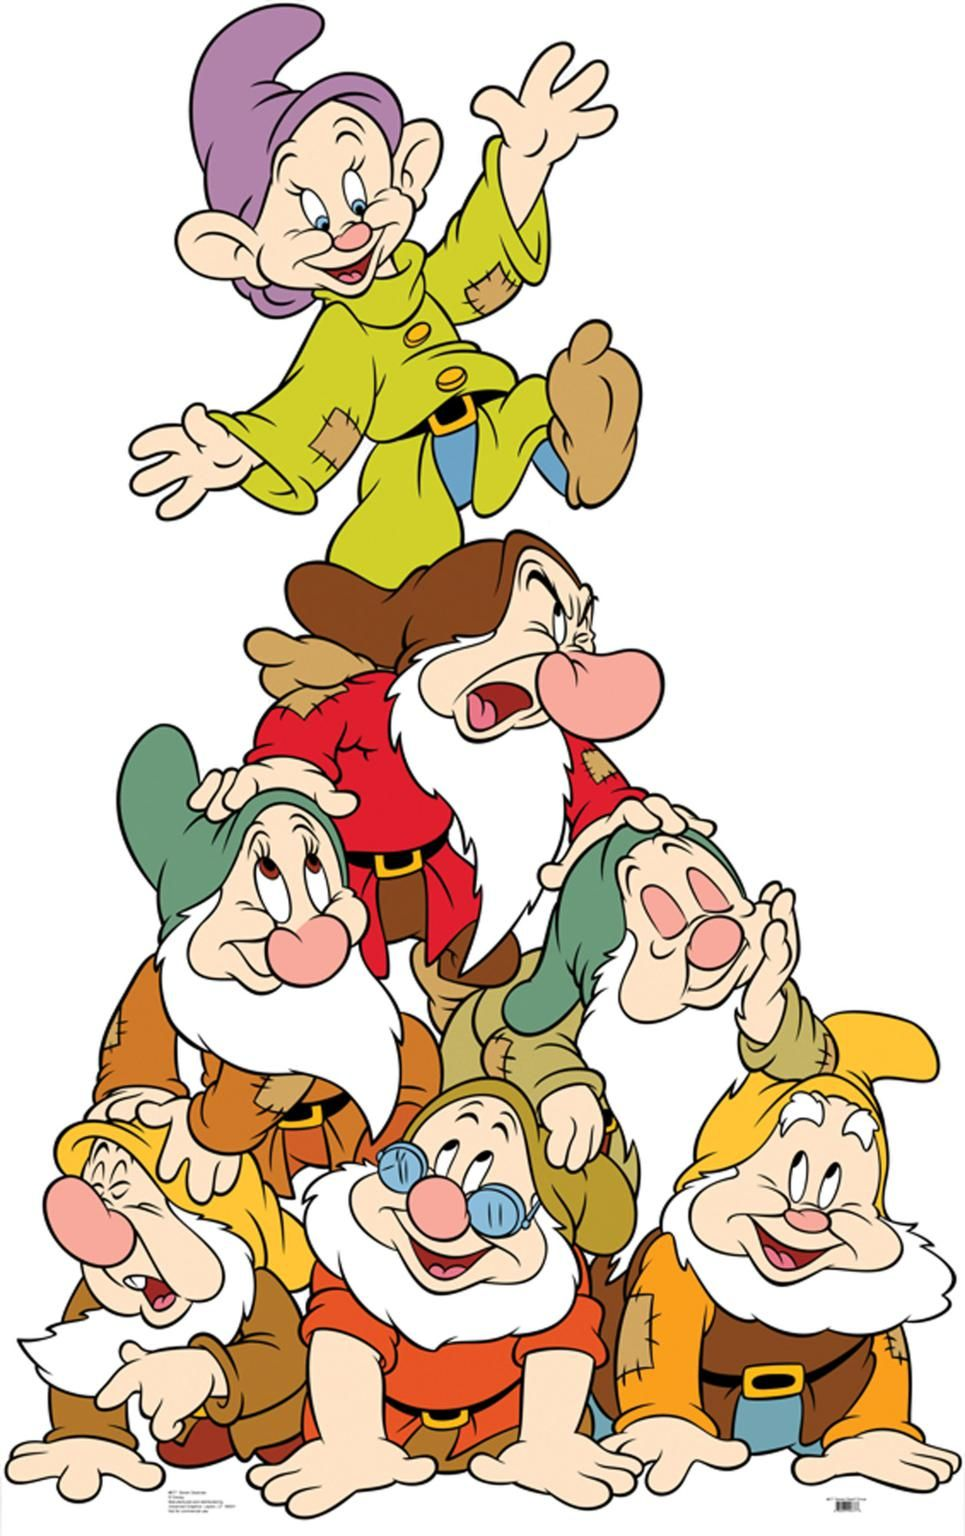 Clipart 7 dwarfs library snow white and the 7 dwarfs | Clip Art-Disney 4 Other Characters ... library